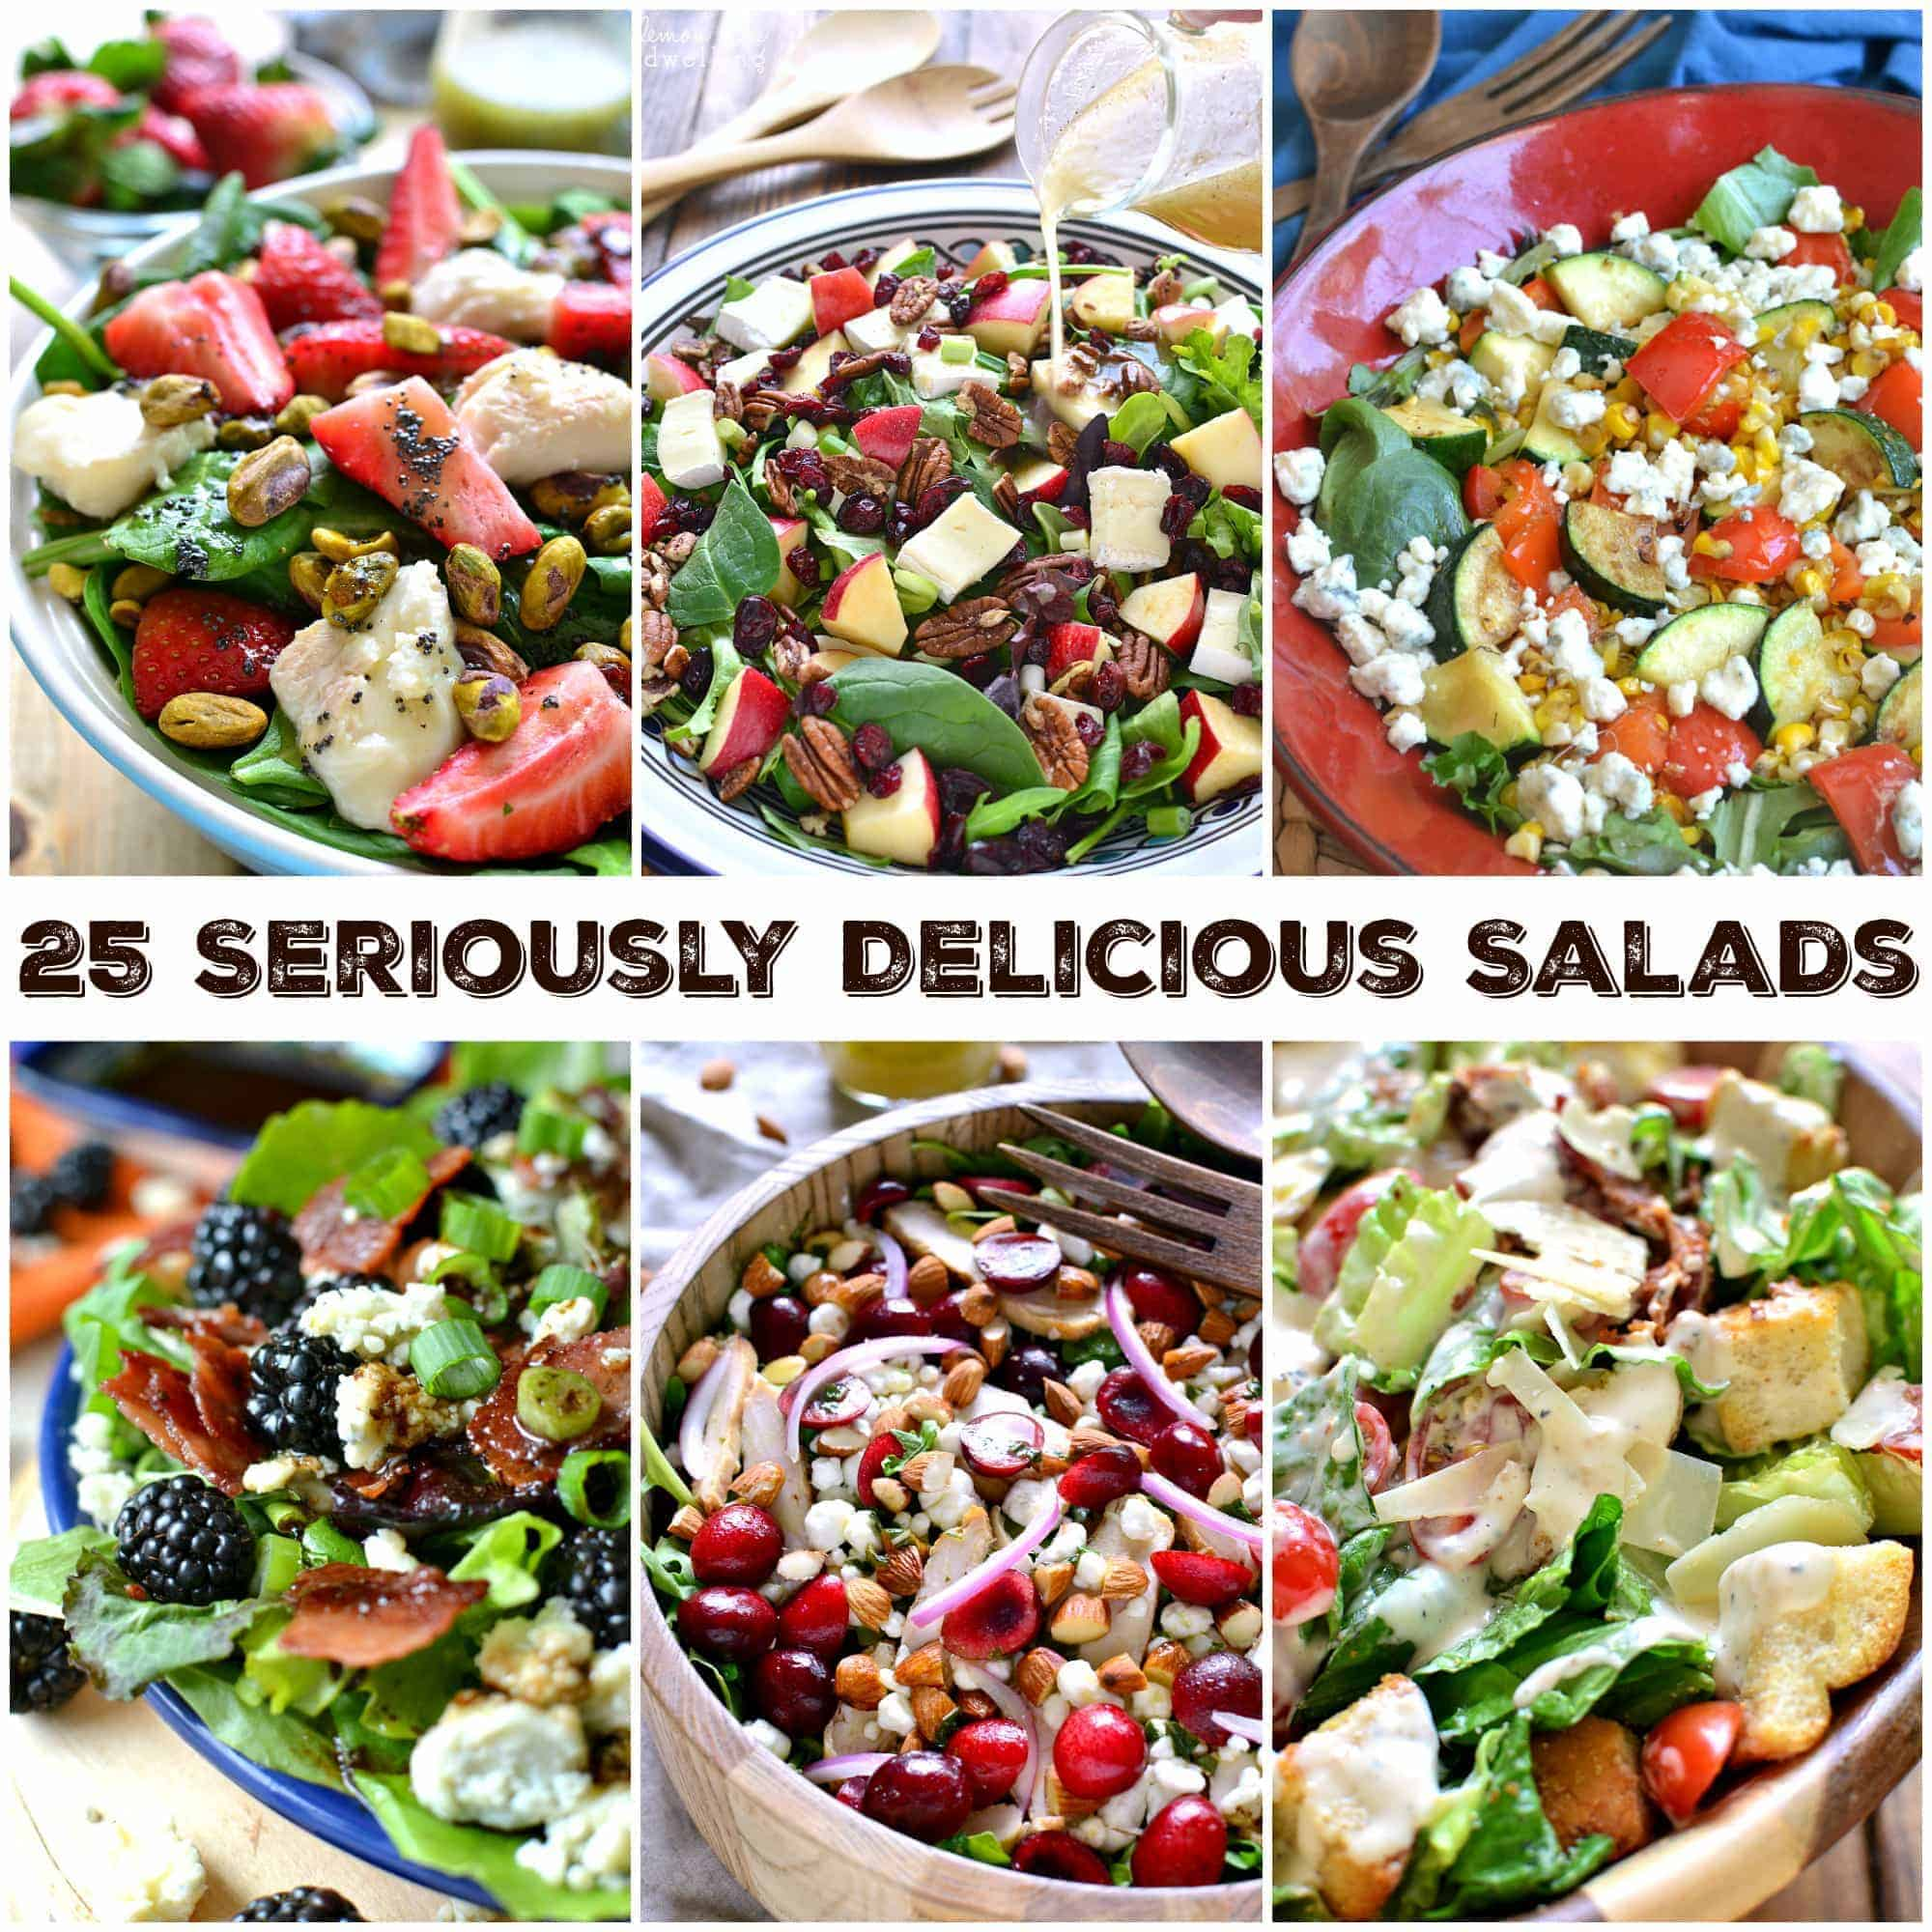 25 Seriously Delicious Salads - loaded with all the best ingredients! A salad for every occasion and every taste!